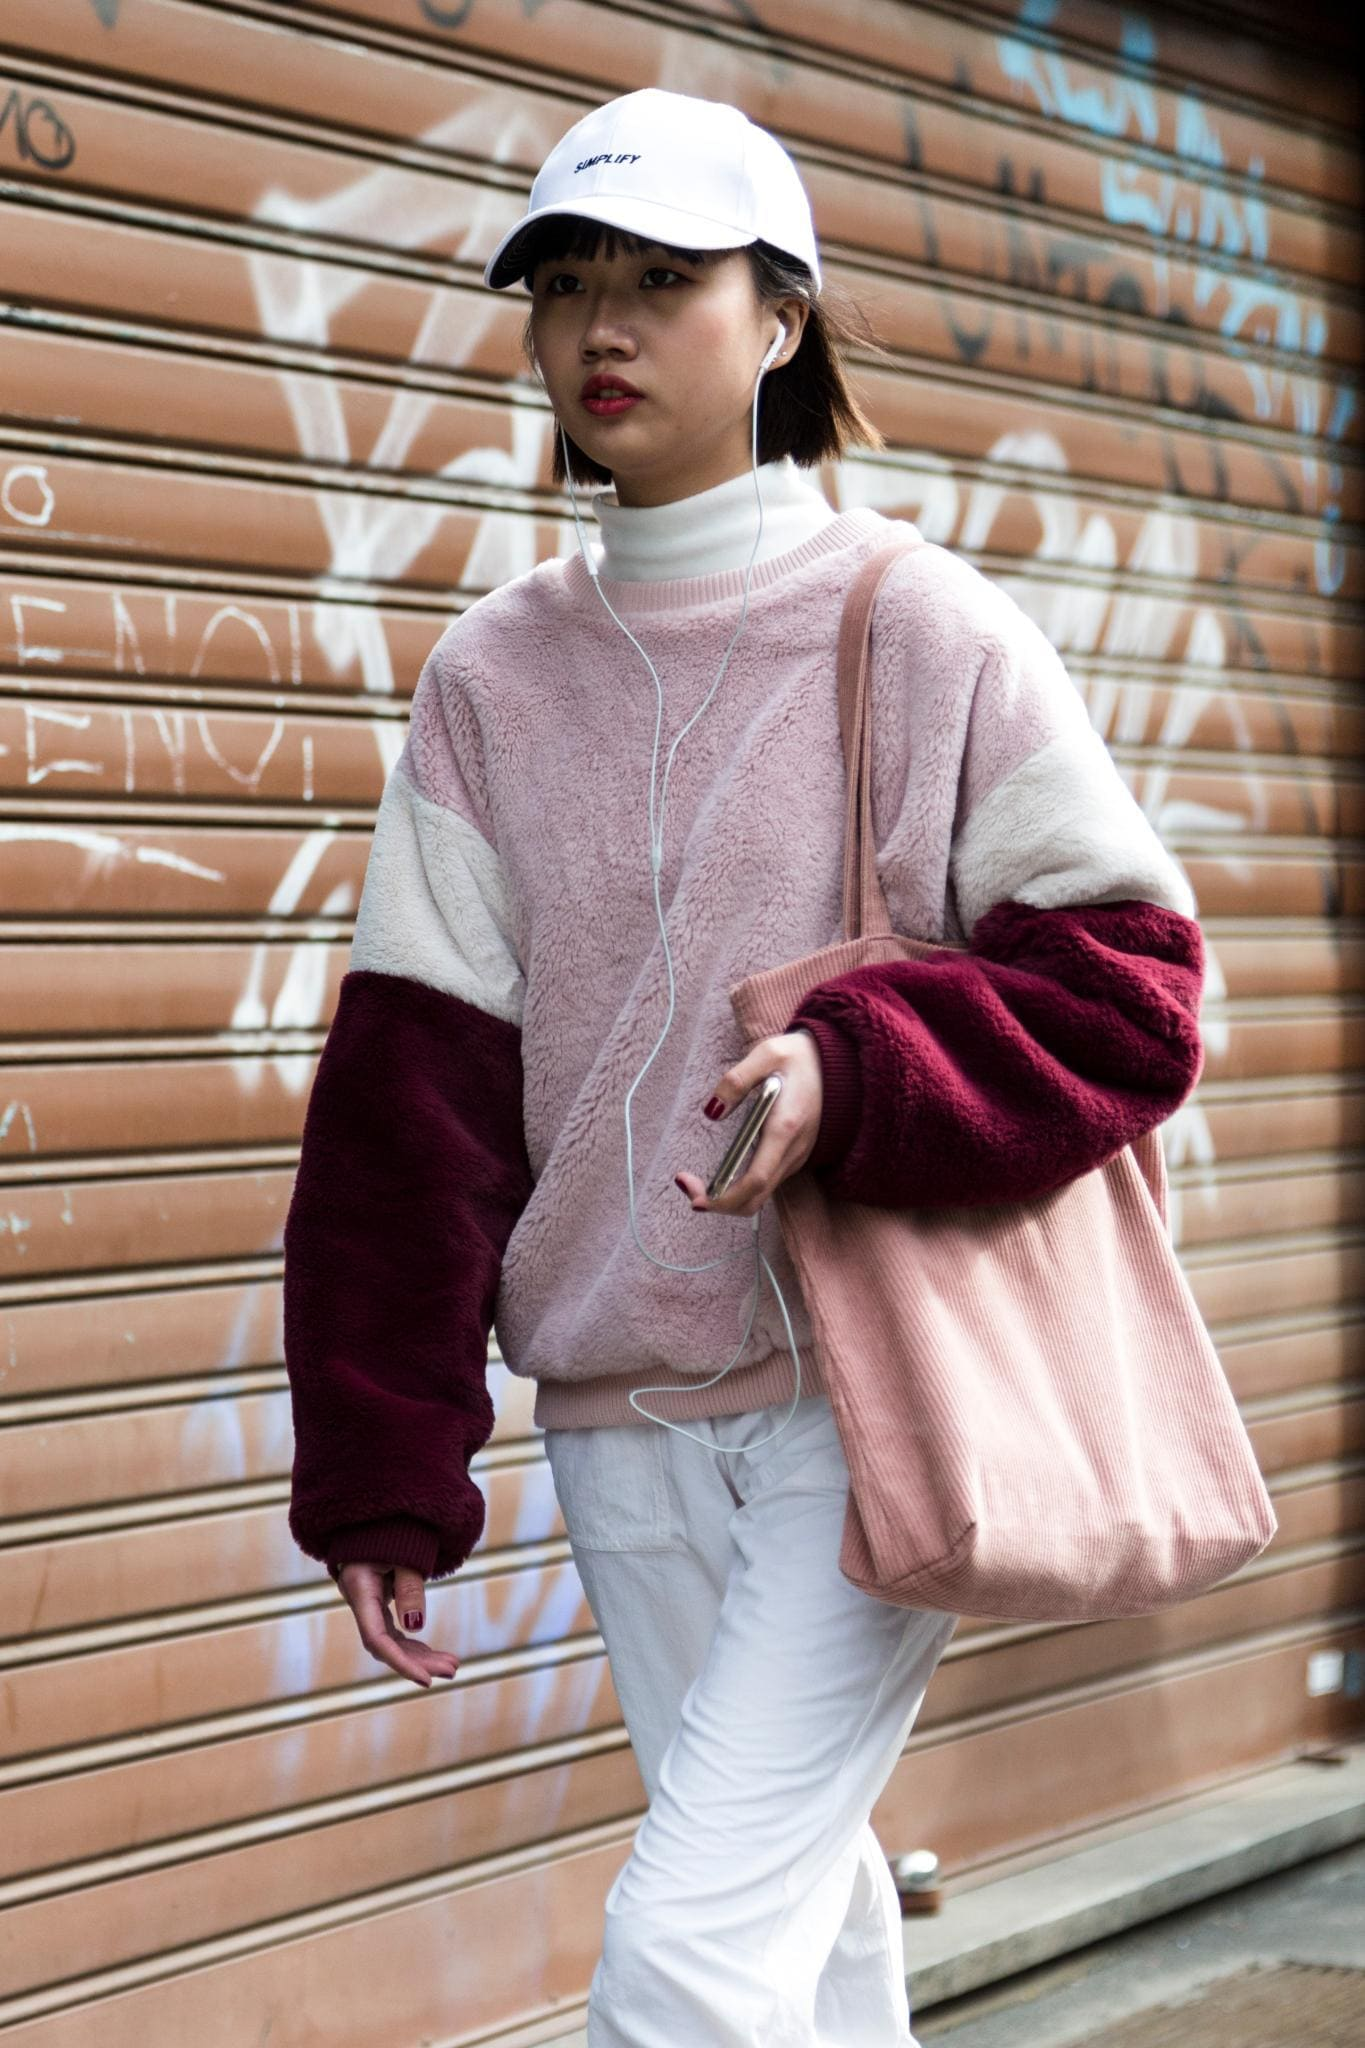 Milan Fashion Week Street Style: Woman with dark brown blunt bob wearing a white baseball cap and pink toned sports outfit.